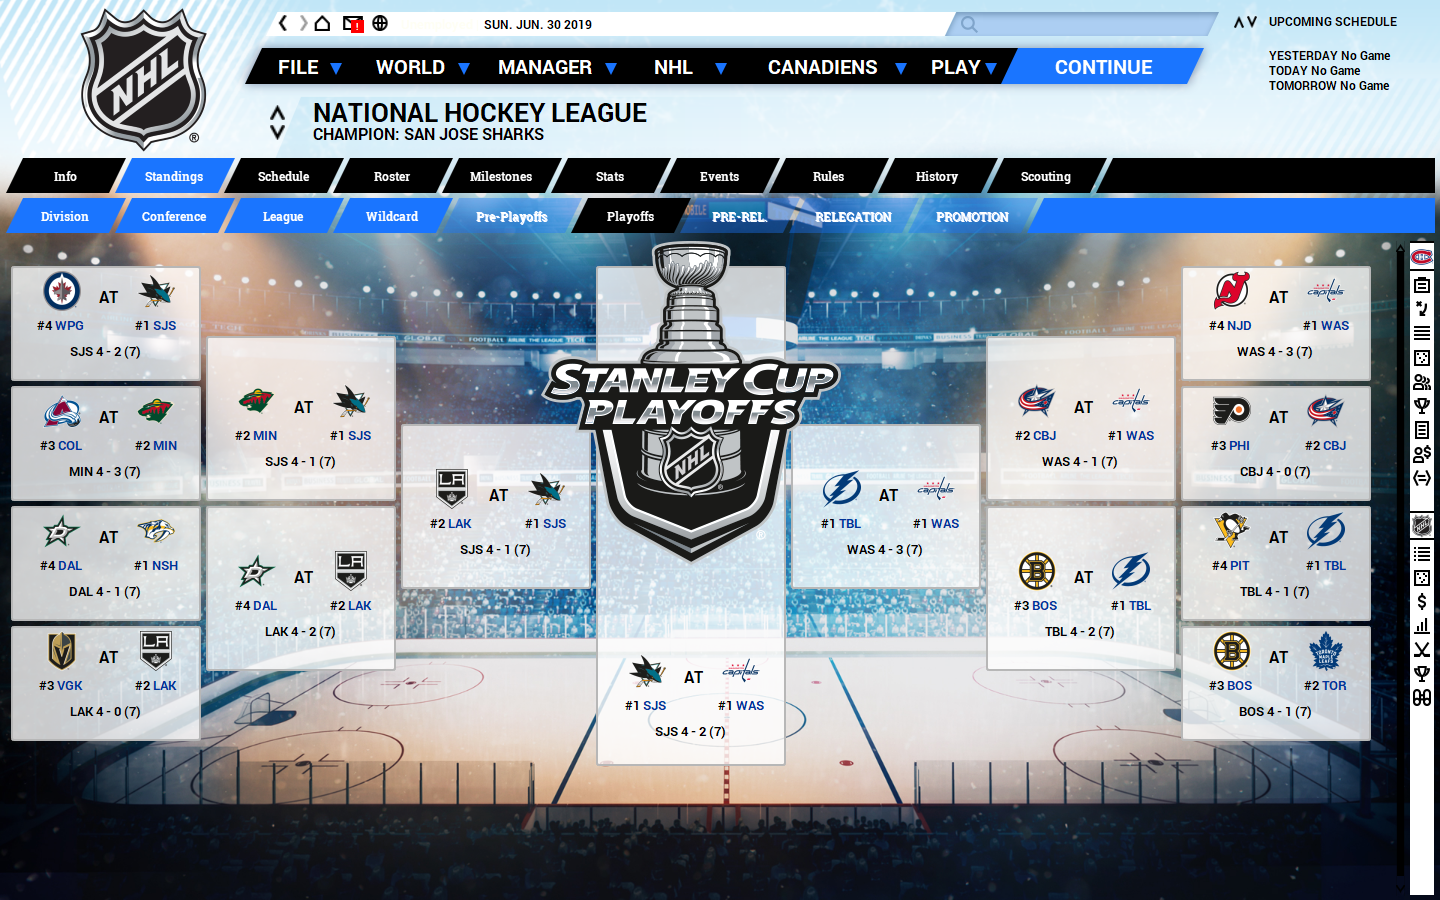 San Jose Sharks forecast to win Stanley Cup, according to FHM 5